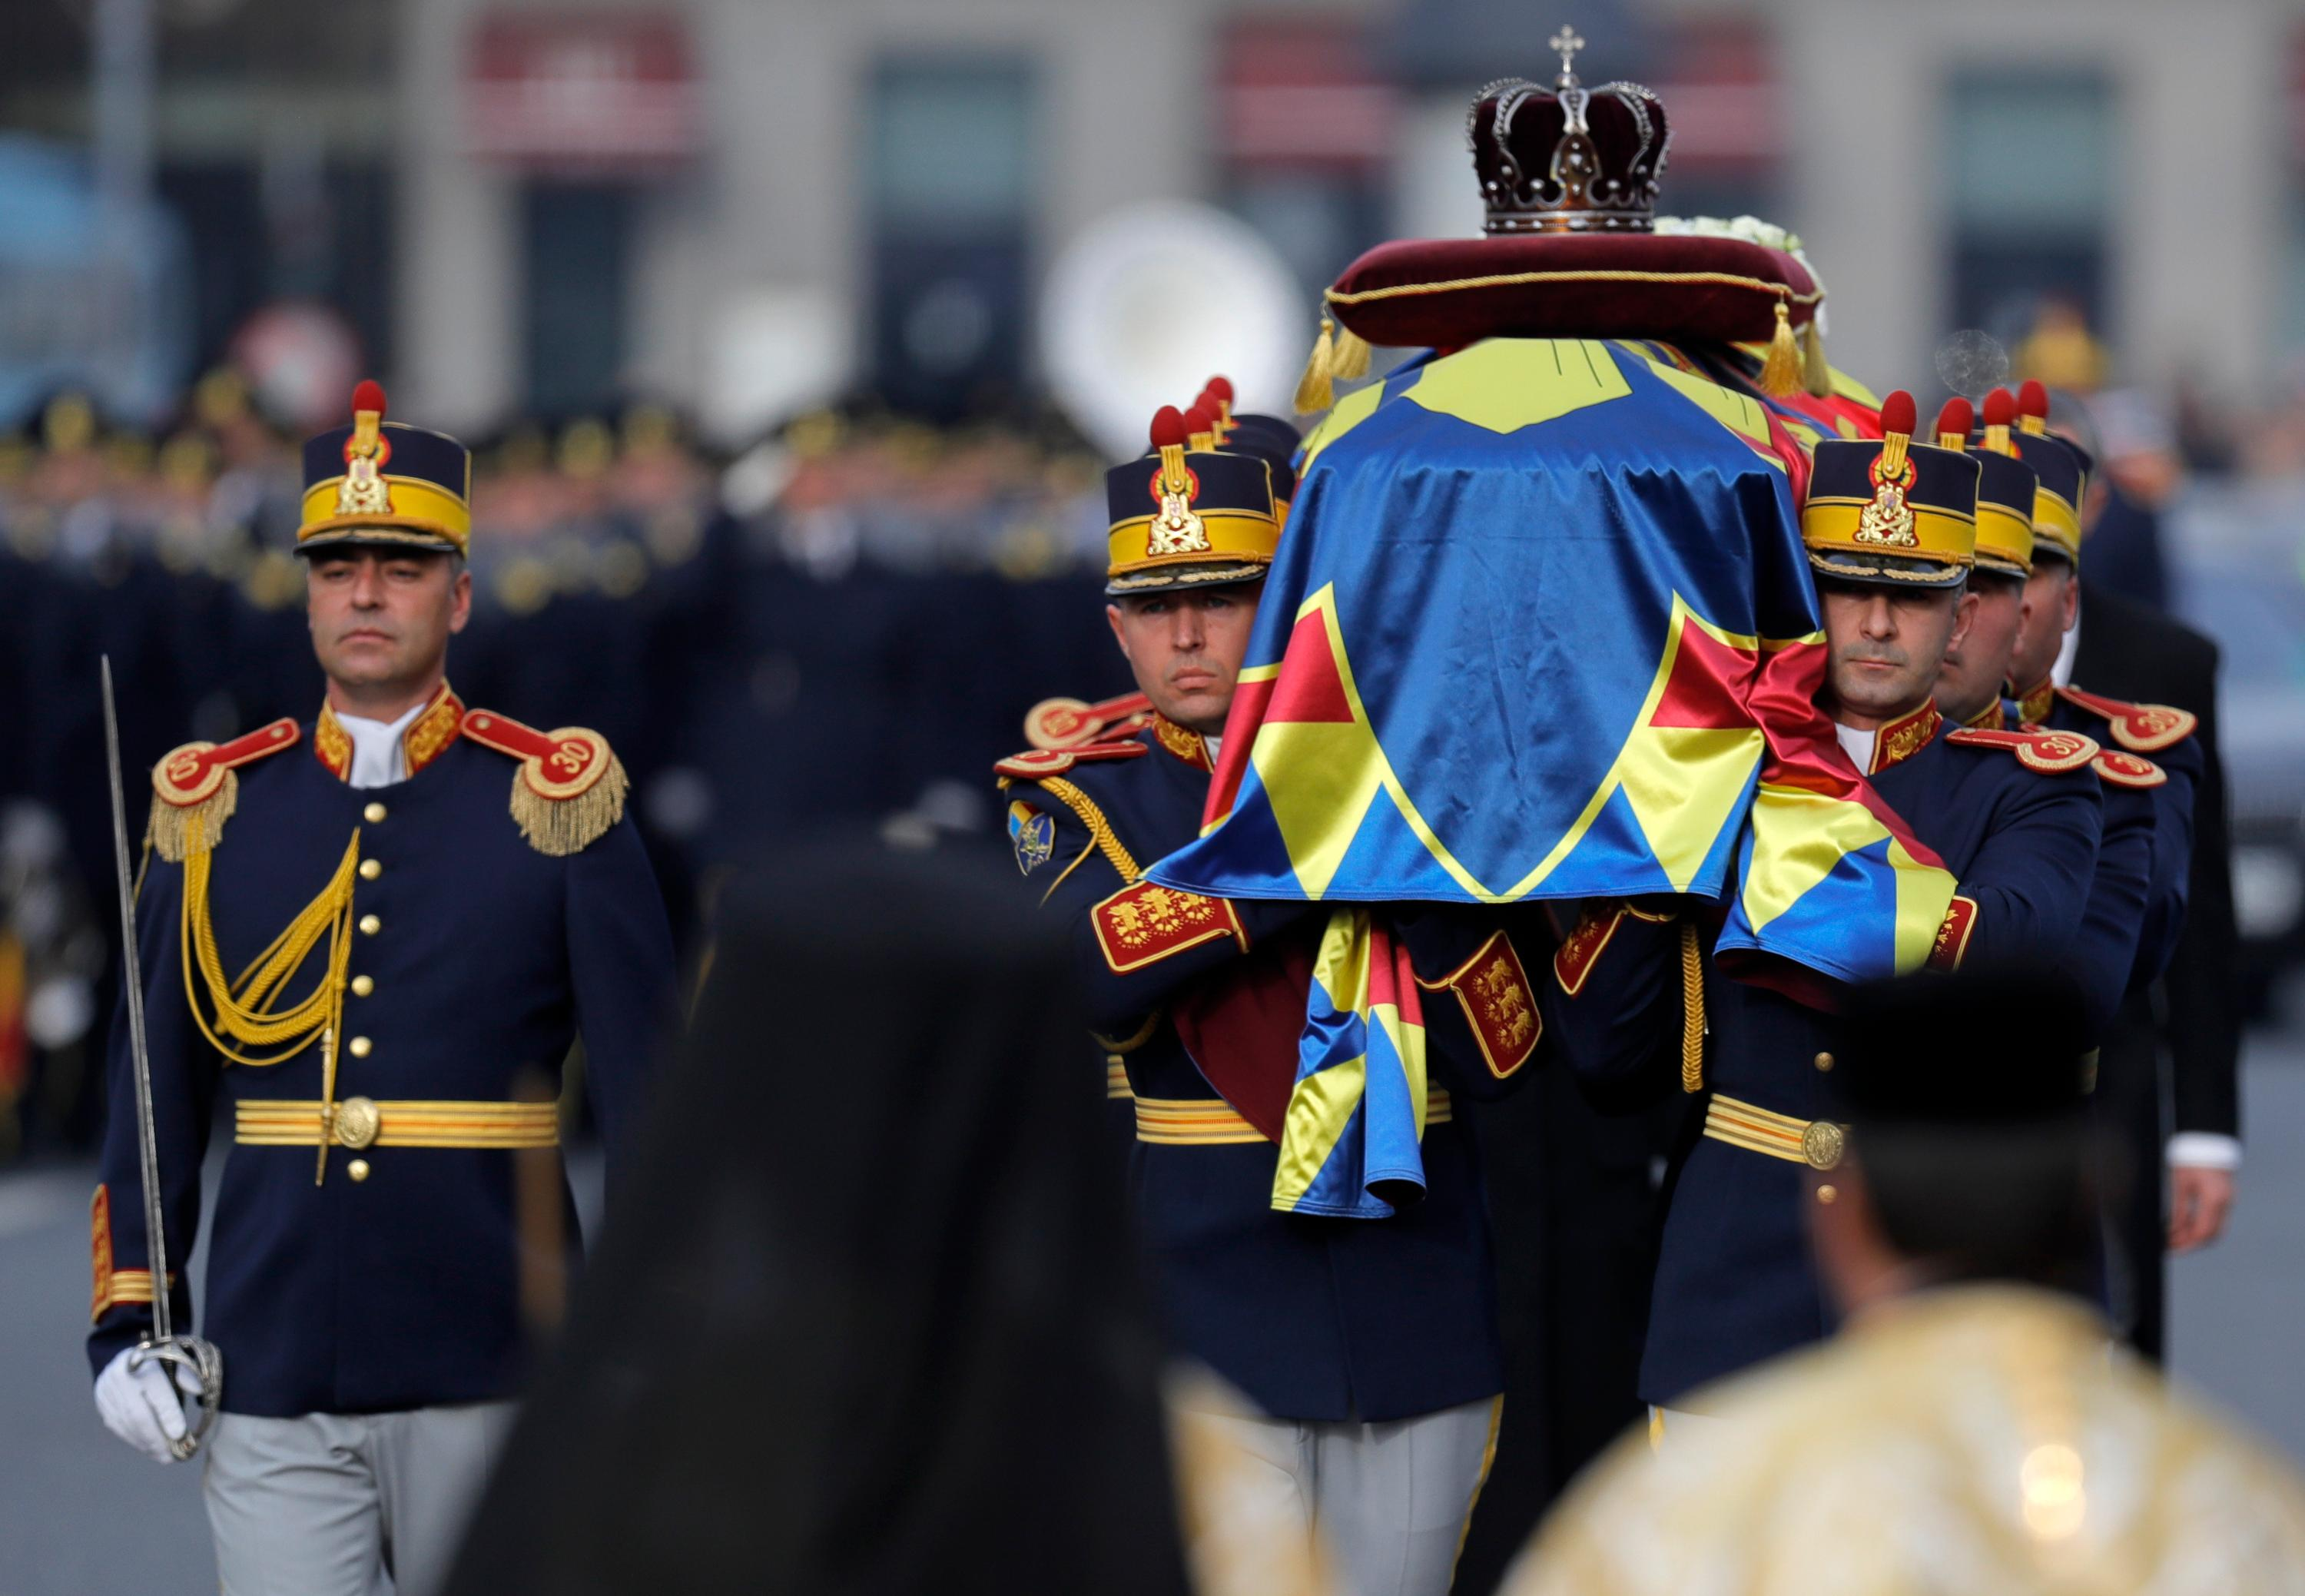 Honor guard soldiers carry the coffin of the late Romanian King Michael during the funeral ceremony outside the former royal palace in Bucharest, Romania, Saturday, Dec.16, 2017. Thousands waited in line to pay their respects to Former King Michael, who ruled Romania during WWII, and died on Dec. 5, 2017, aged 96, in Switzerland. (AP Photo/Vadim Ghirda)